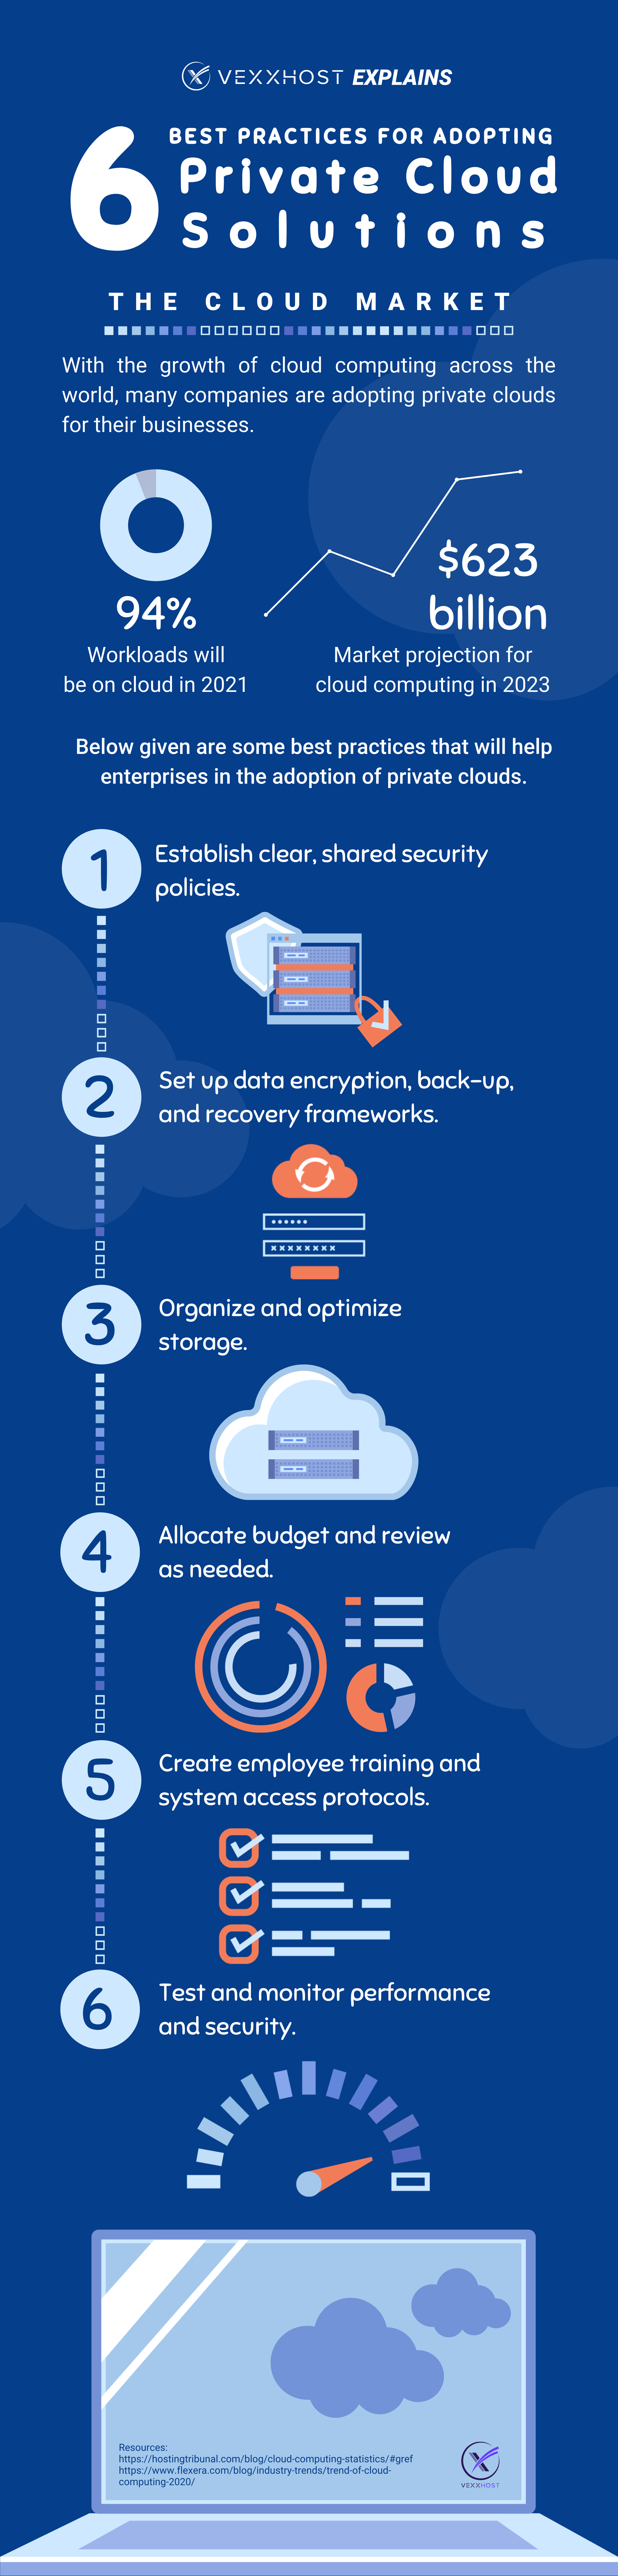 6 Best Practices for Adopting Private Cloud Solutions